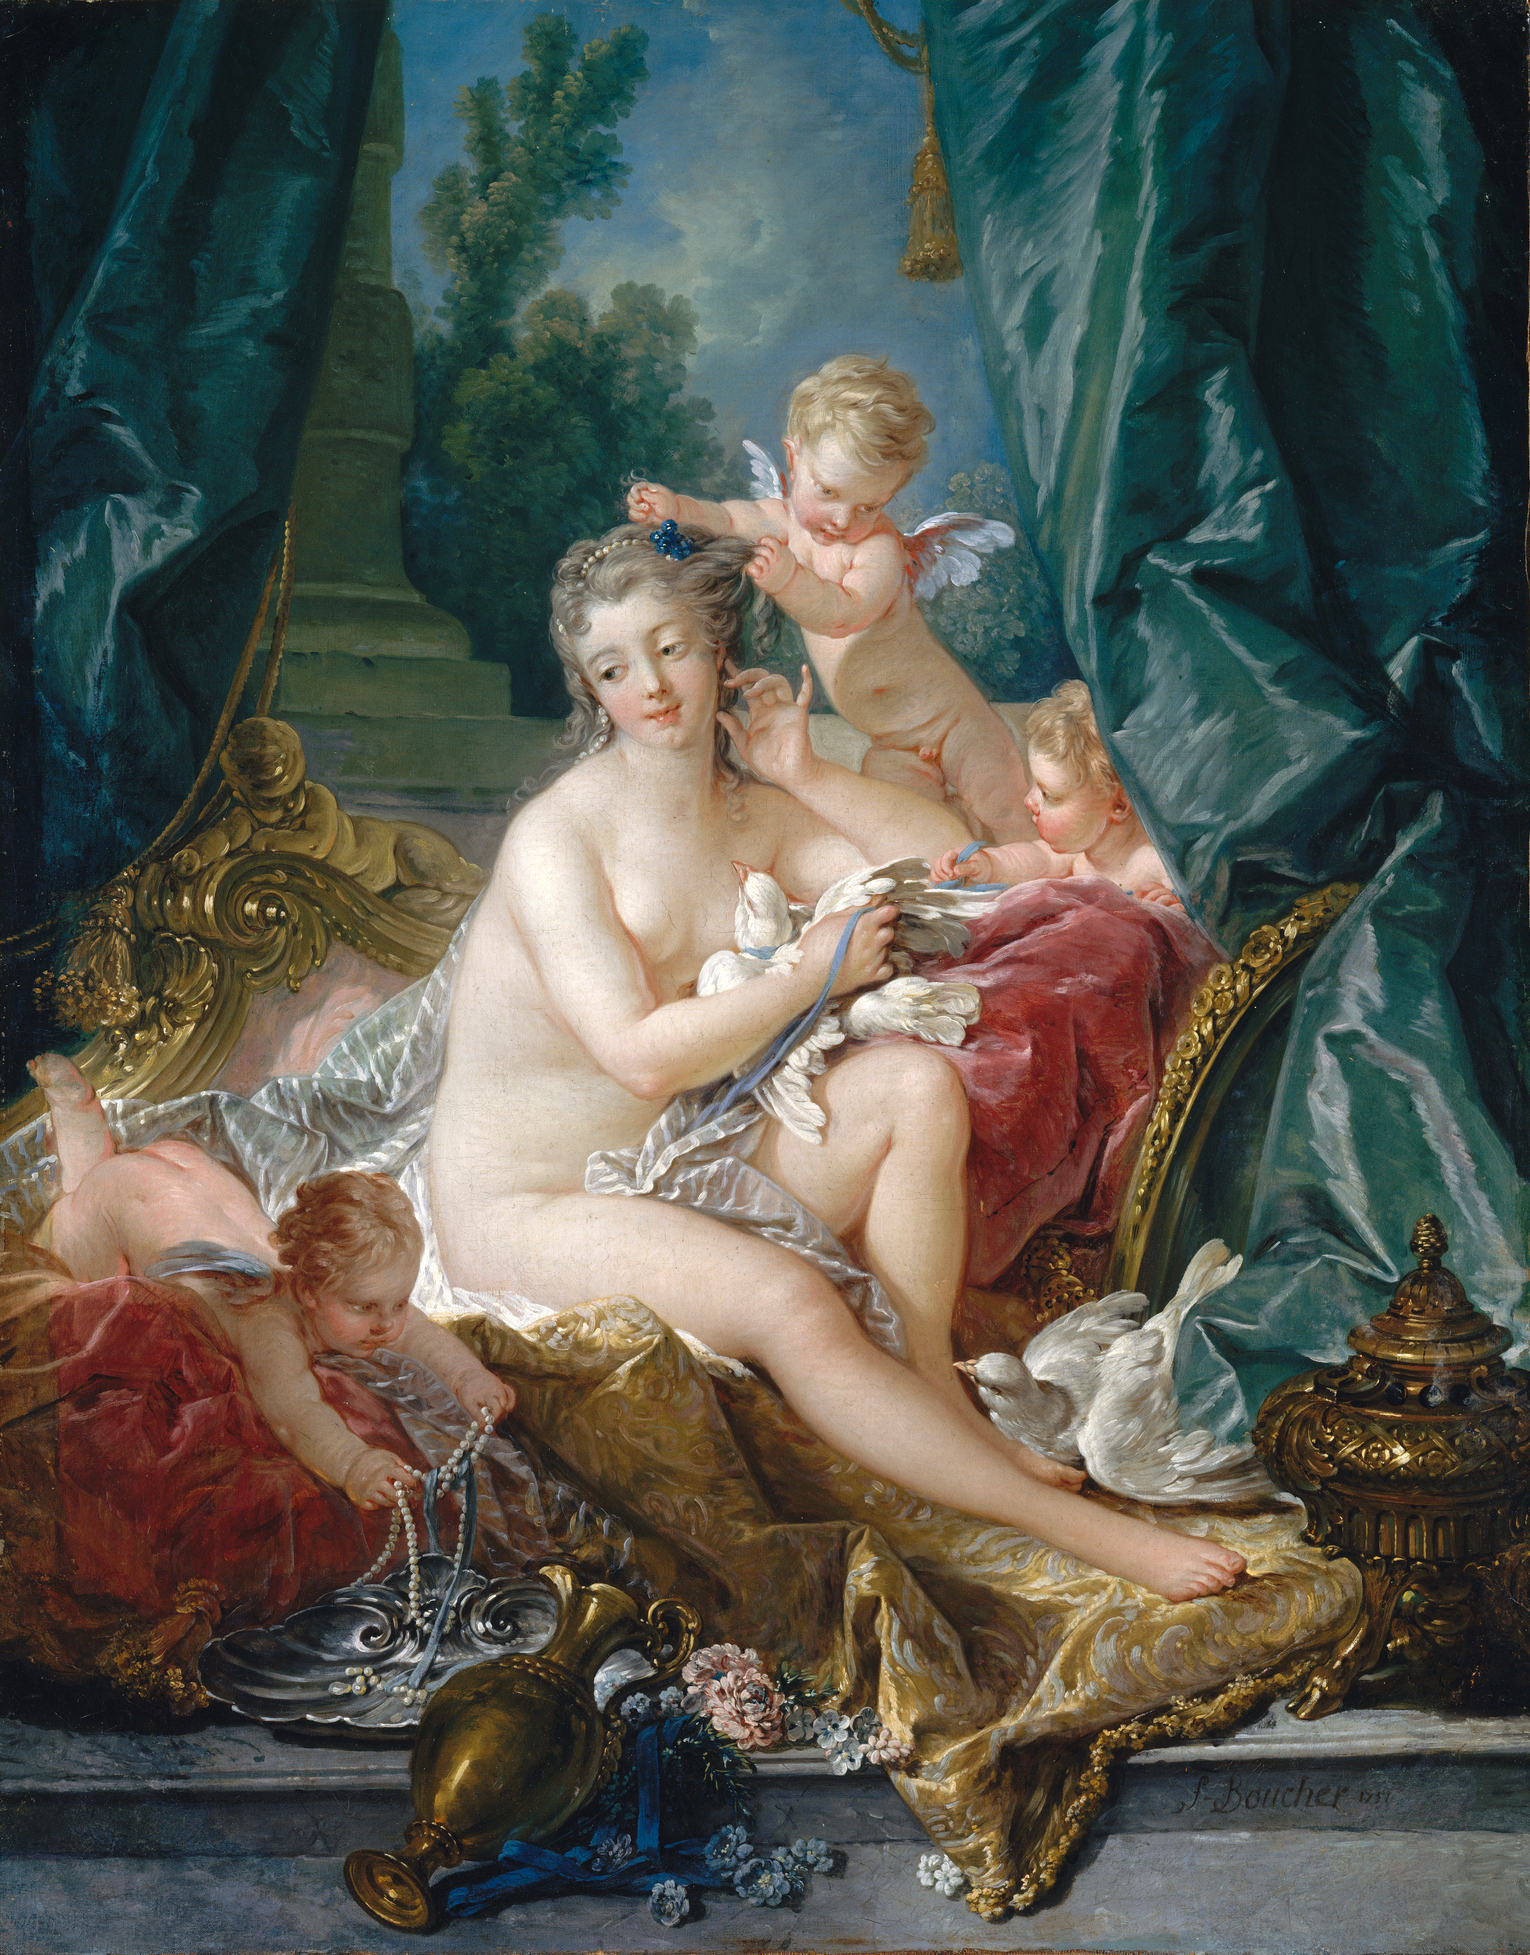 rococo art movement the toilette of venus by franccedilois boucher